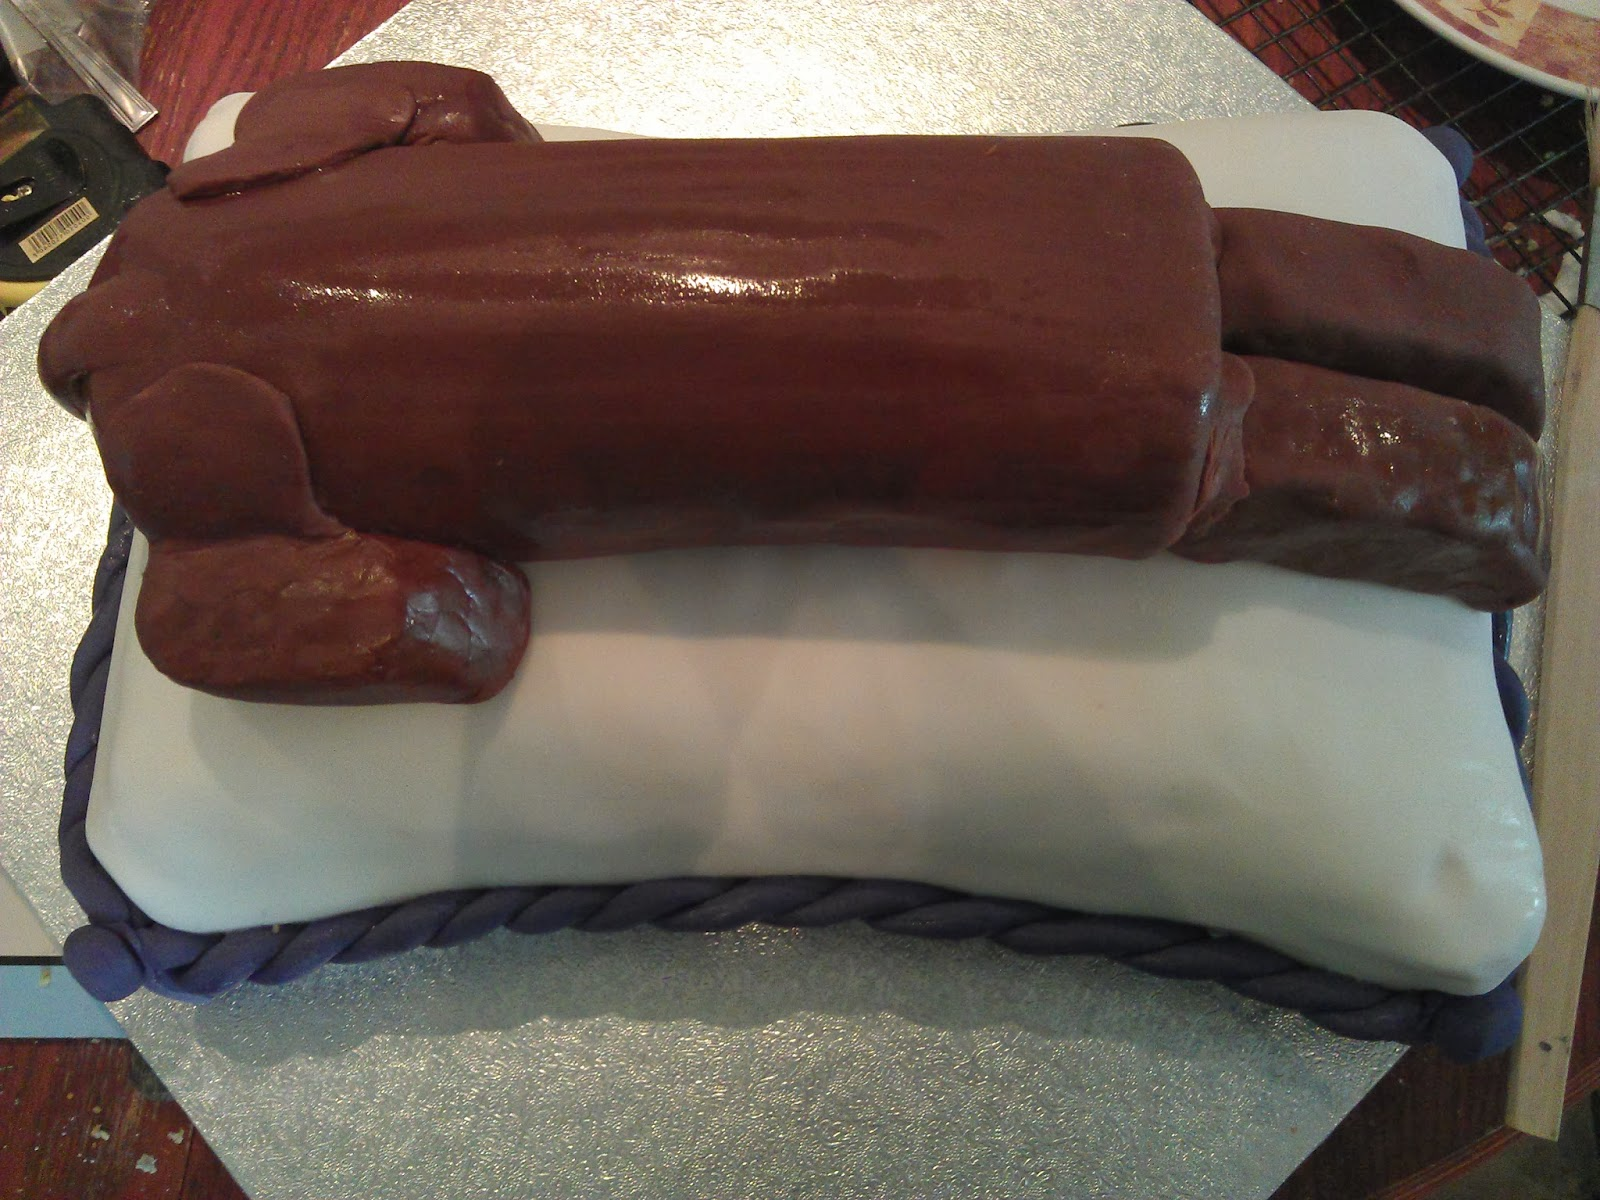 The BaKerry: Sausage Dog on a Cake